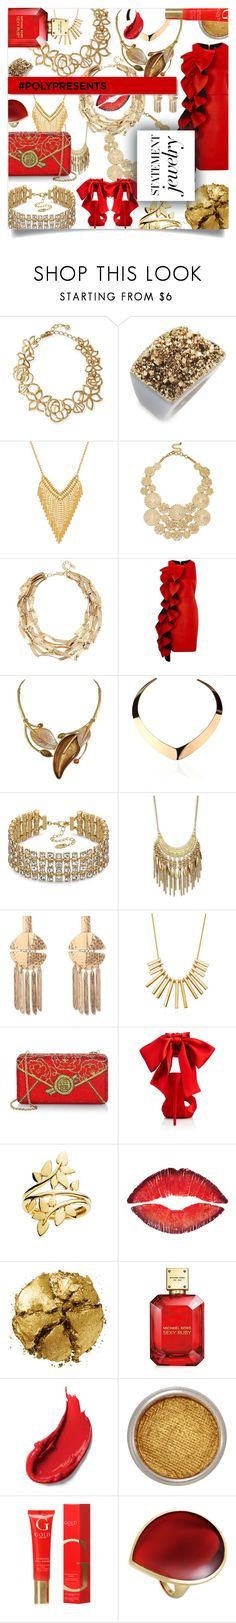 """#PolyPresents: Statement Jewelry"" by ezgi-g ❤ liked on Polyvore featuring Oscar de la Renta, NAKAMOL, Everlasting Gold, Sole Society, Robert Lee Morris, River Island, Lipsy, Saks Fifth Avenue, BERRICLE and Judith Leiber"